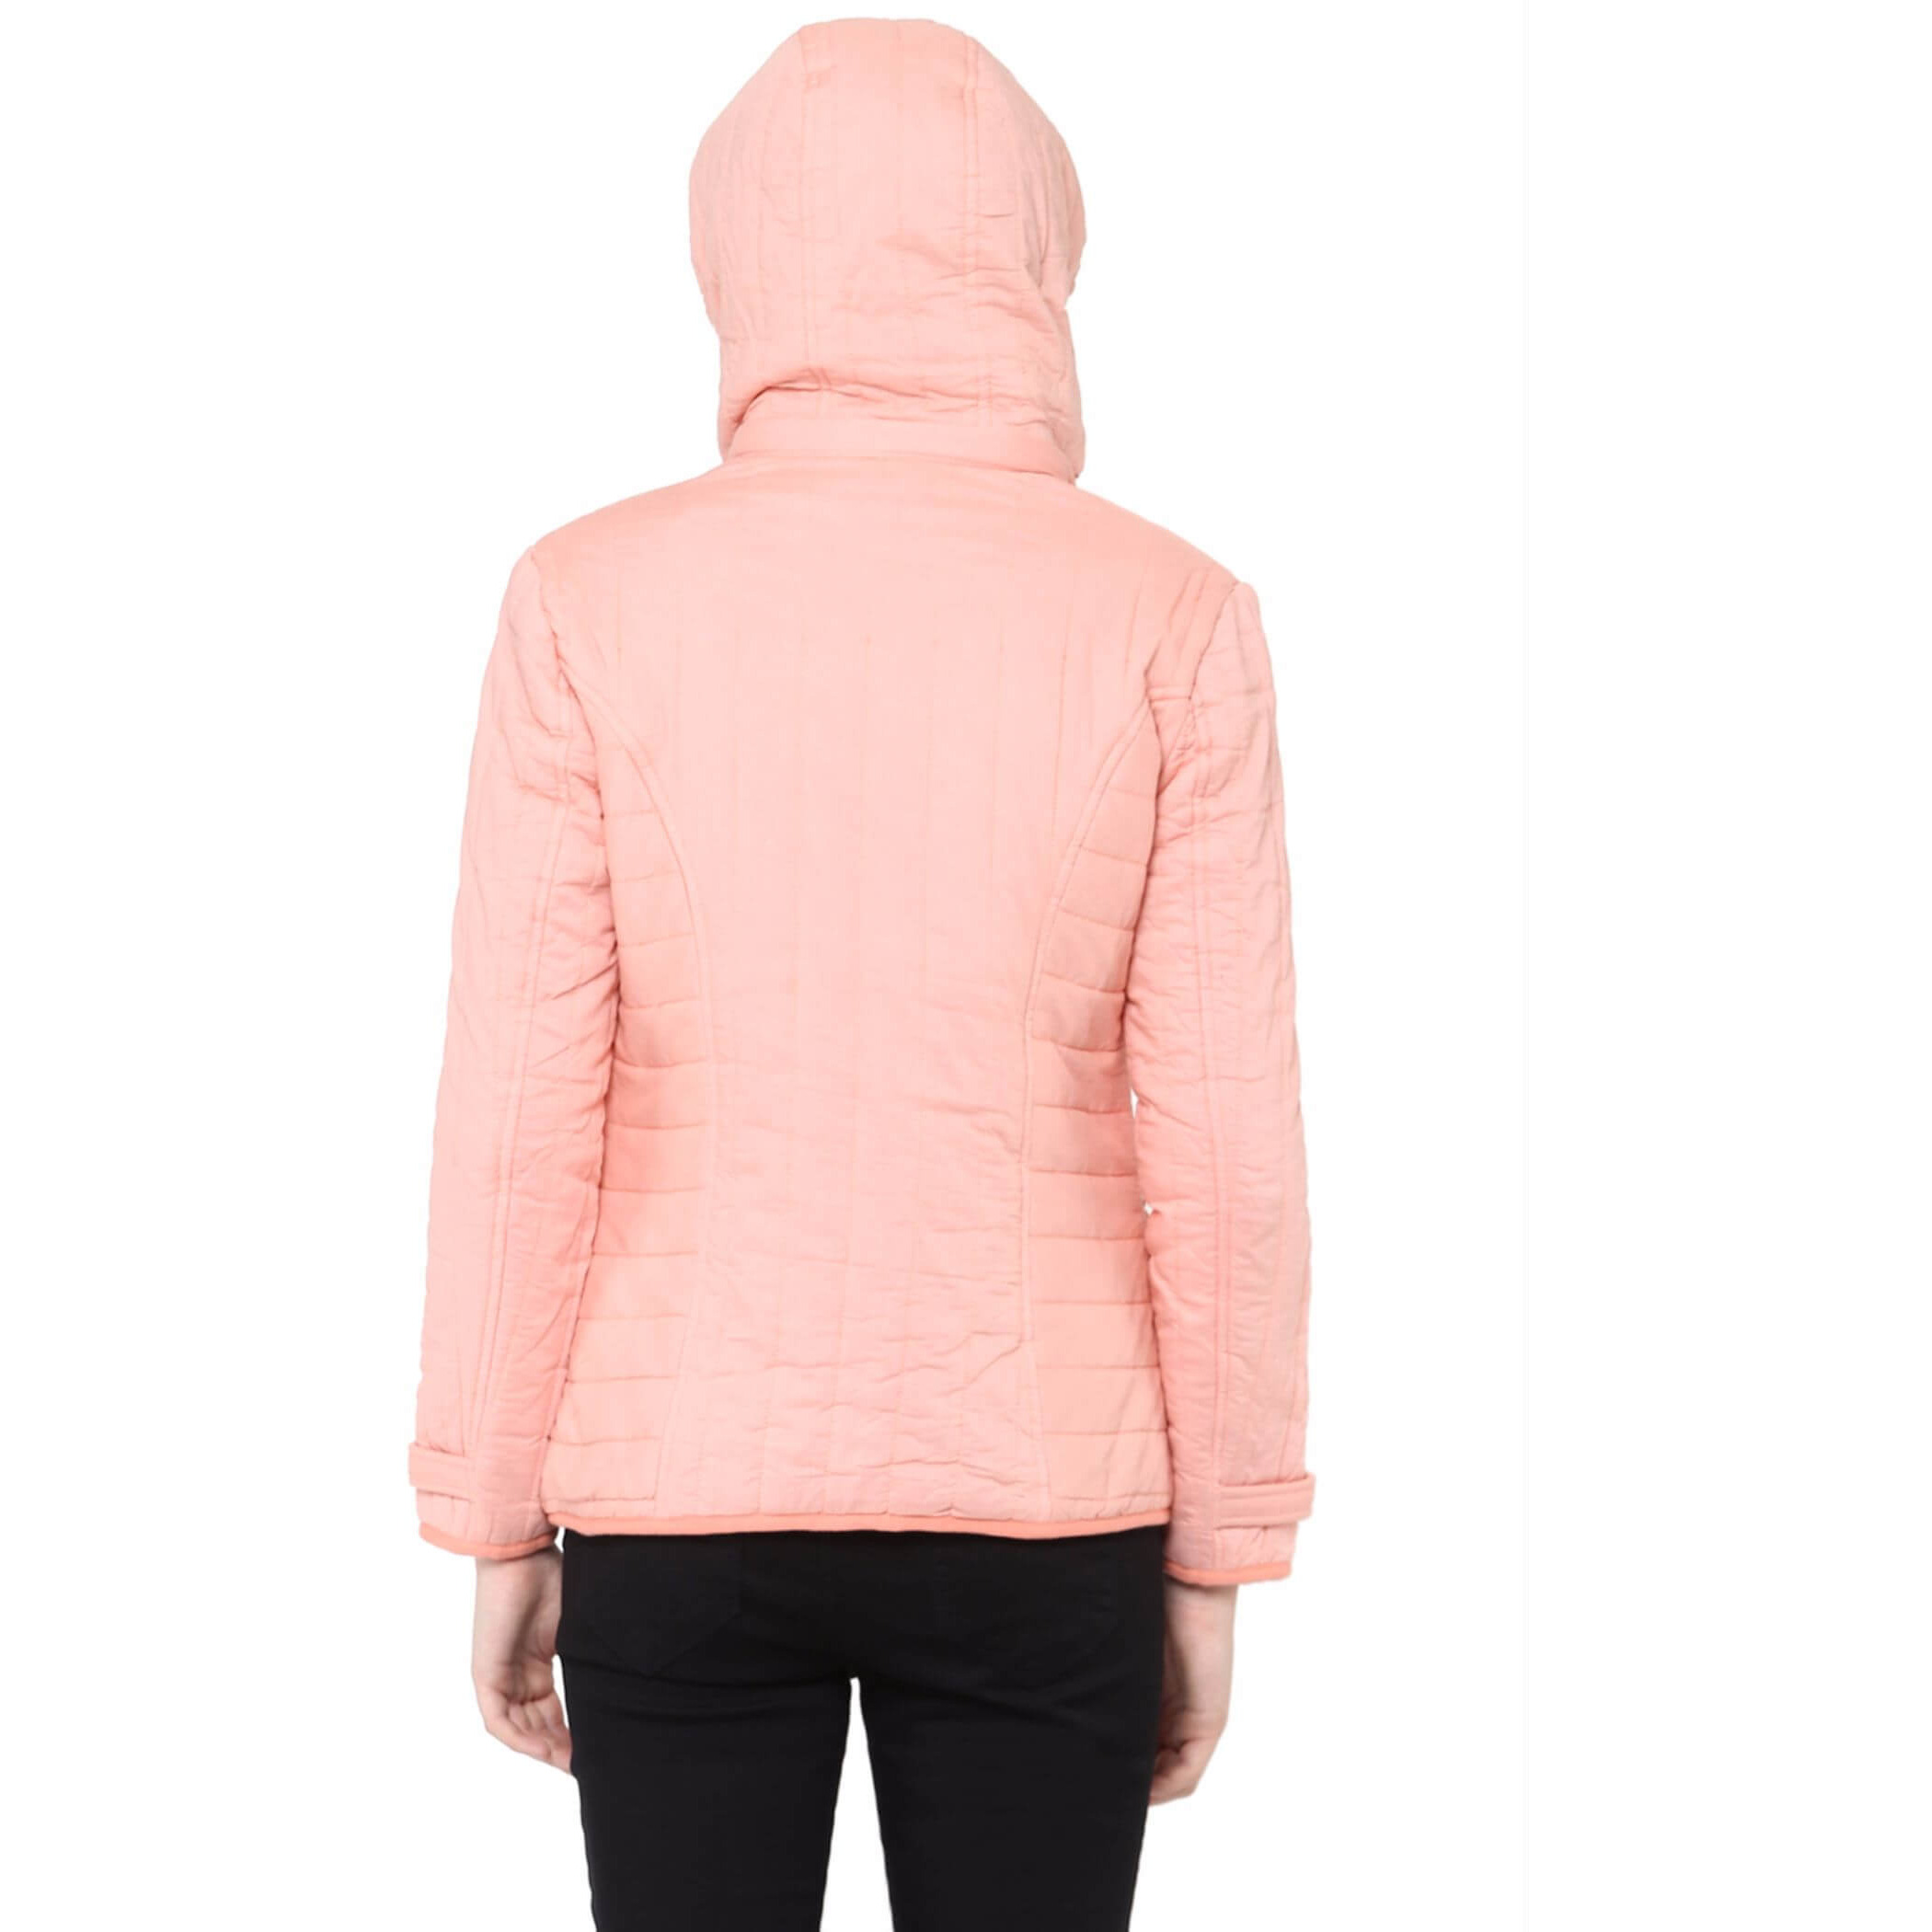 Front Zip Solid Peach Quilted Jacket With Flap Pockets And Patch Motifs On The Front